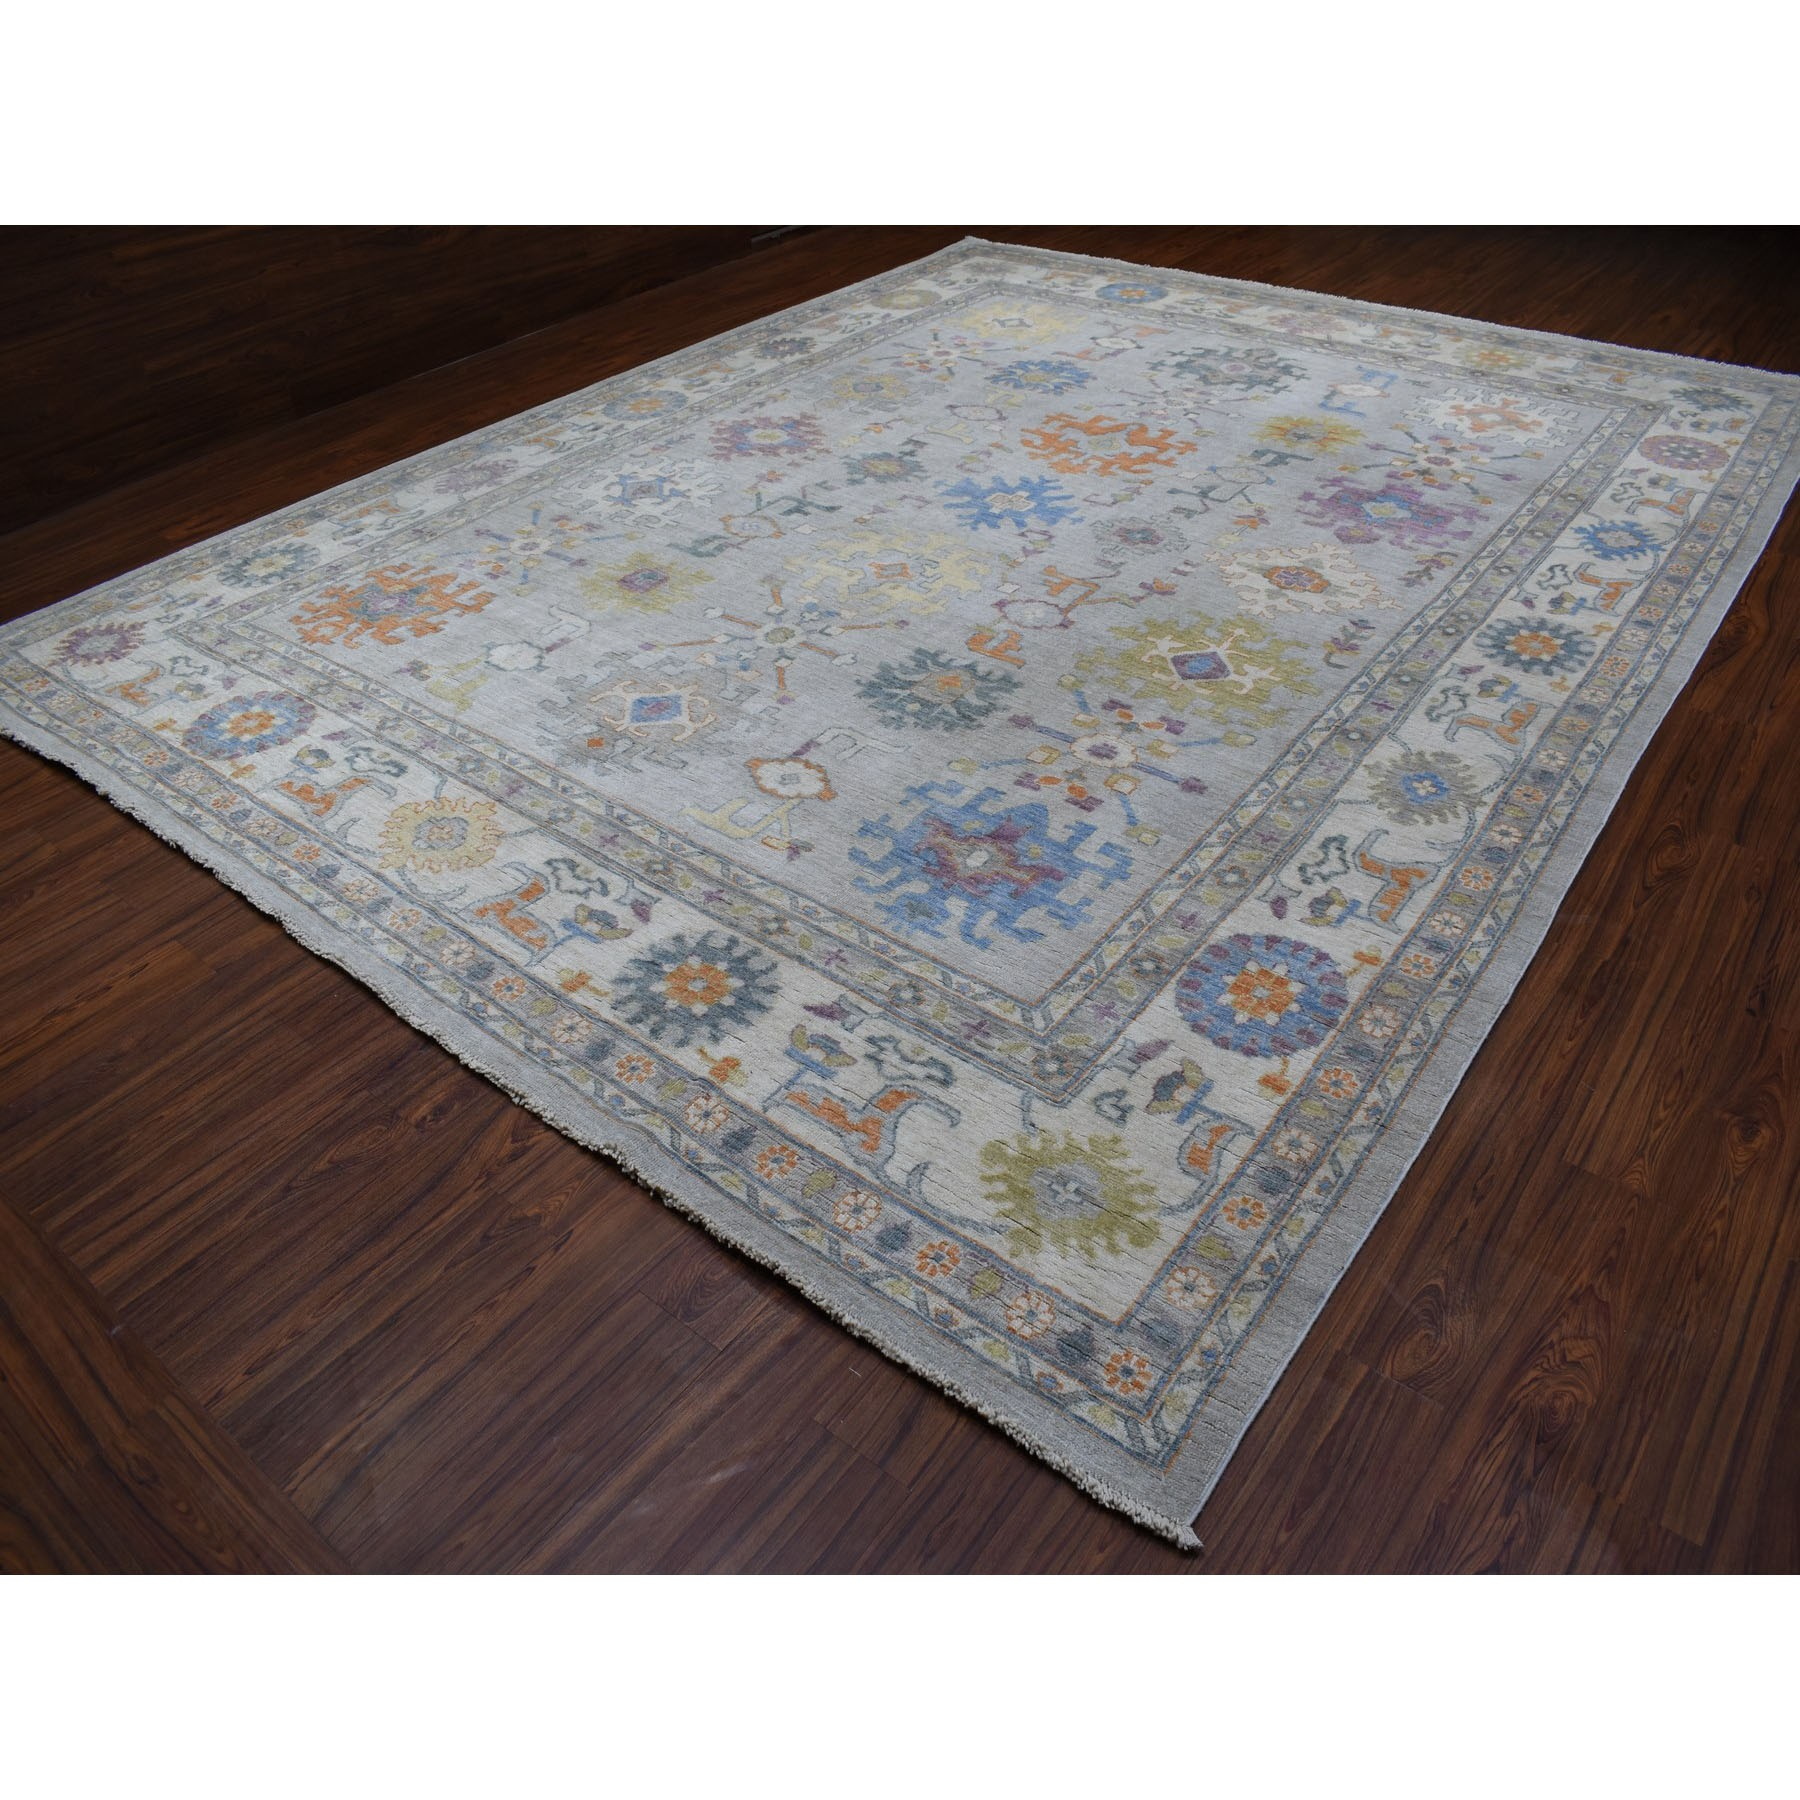 "11'8""x14'7"" Gray Oversize Angora Oushak With Floral Motifs Pure Wool Hand Woven Oriental Rug"